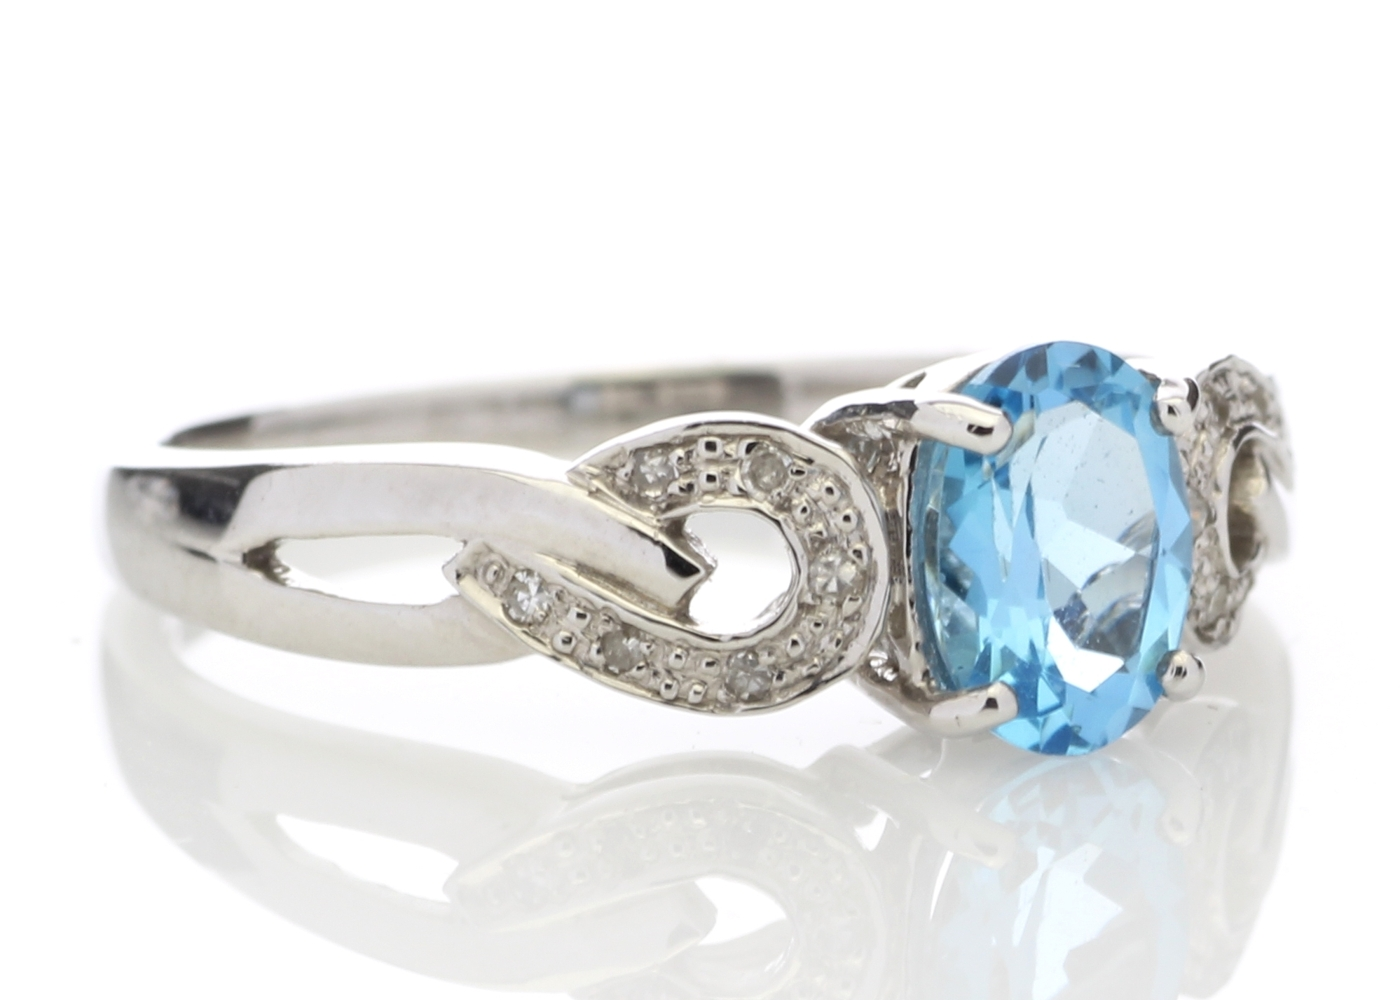 Lot 44 - 9ct White Gold Diamond And Blue Topaz Ring 0.05